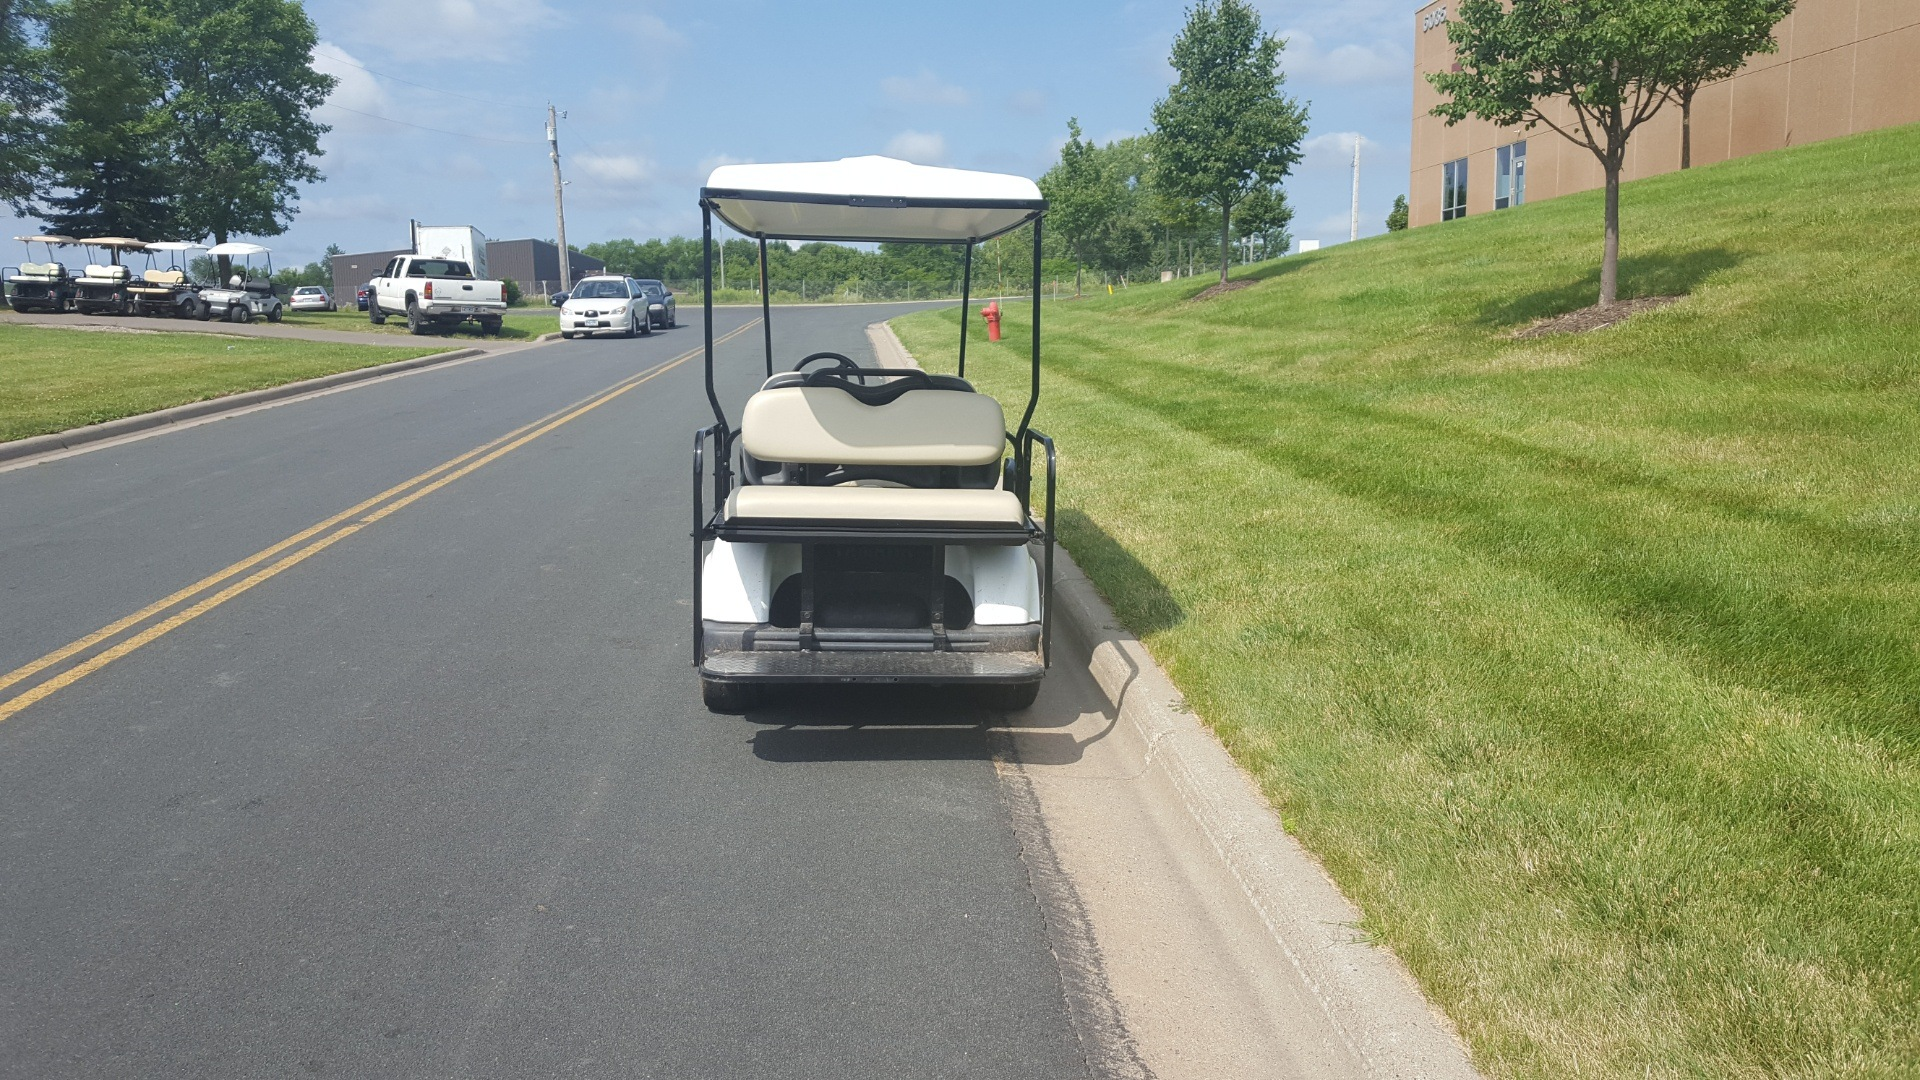 2009 yamaha drive golf carts otsego minnesota 212315 for Yamaha dealers minnesota